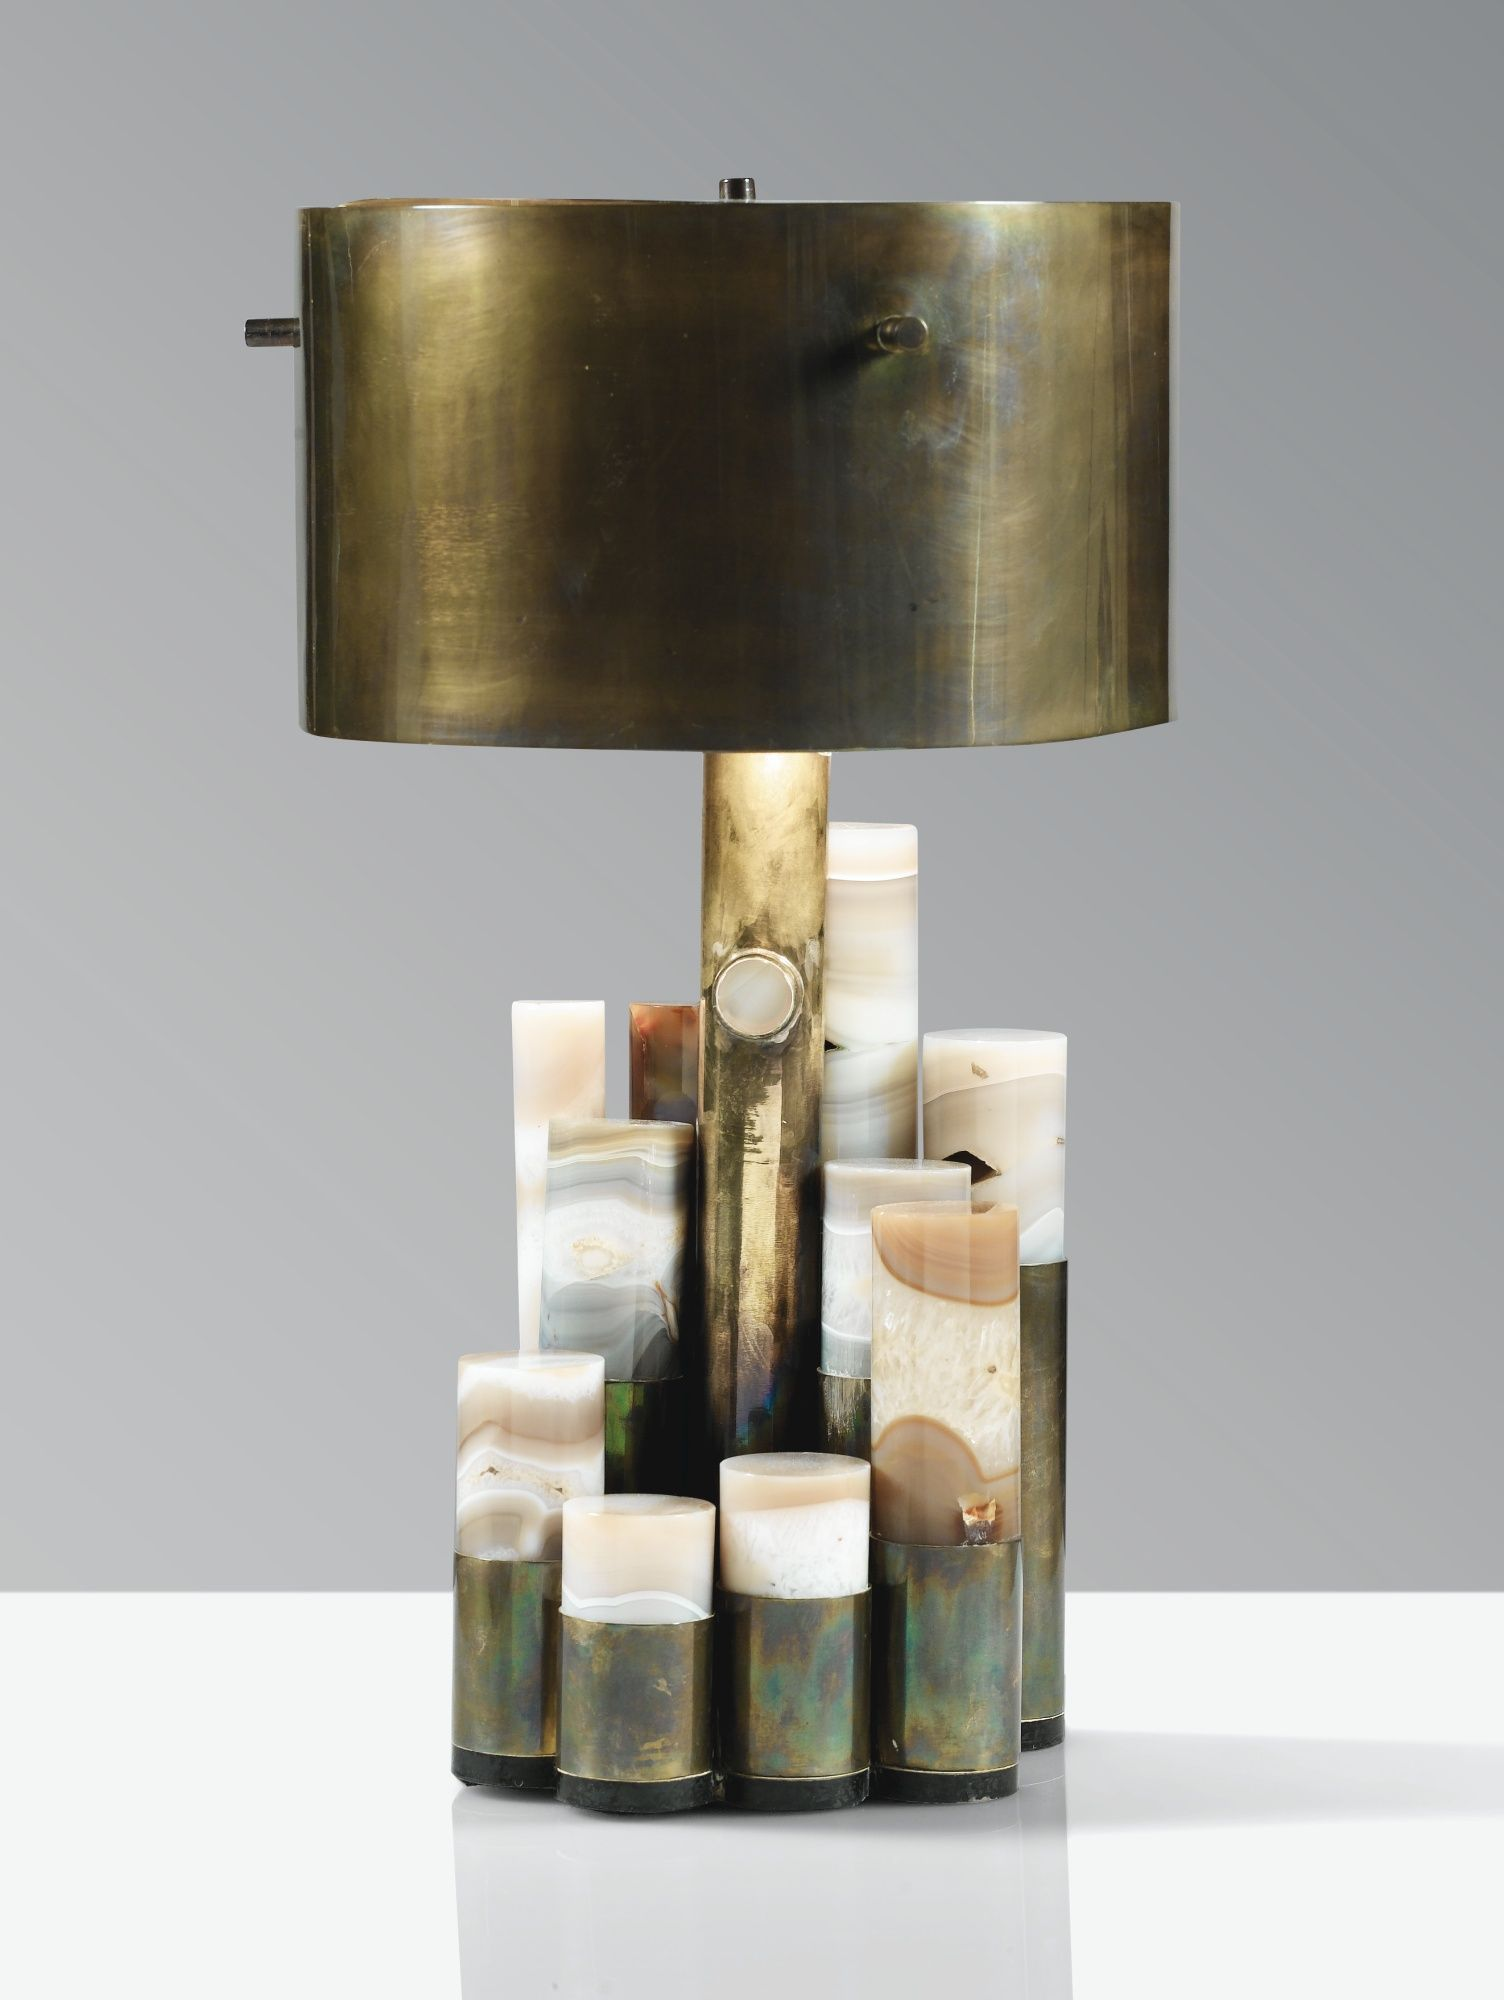 ado chale table lamp c1970 - Lamp Bureau Ado